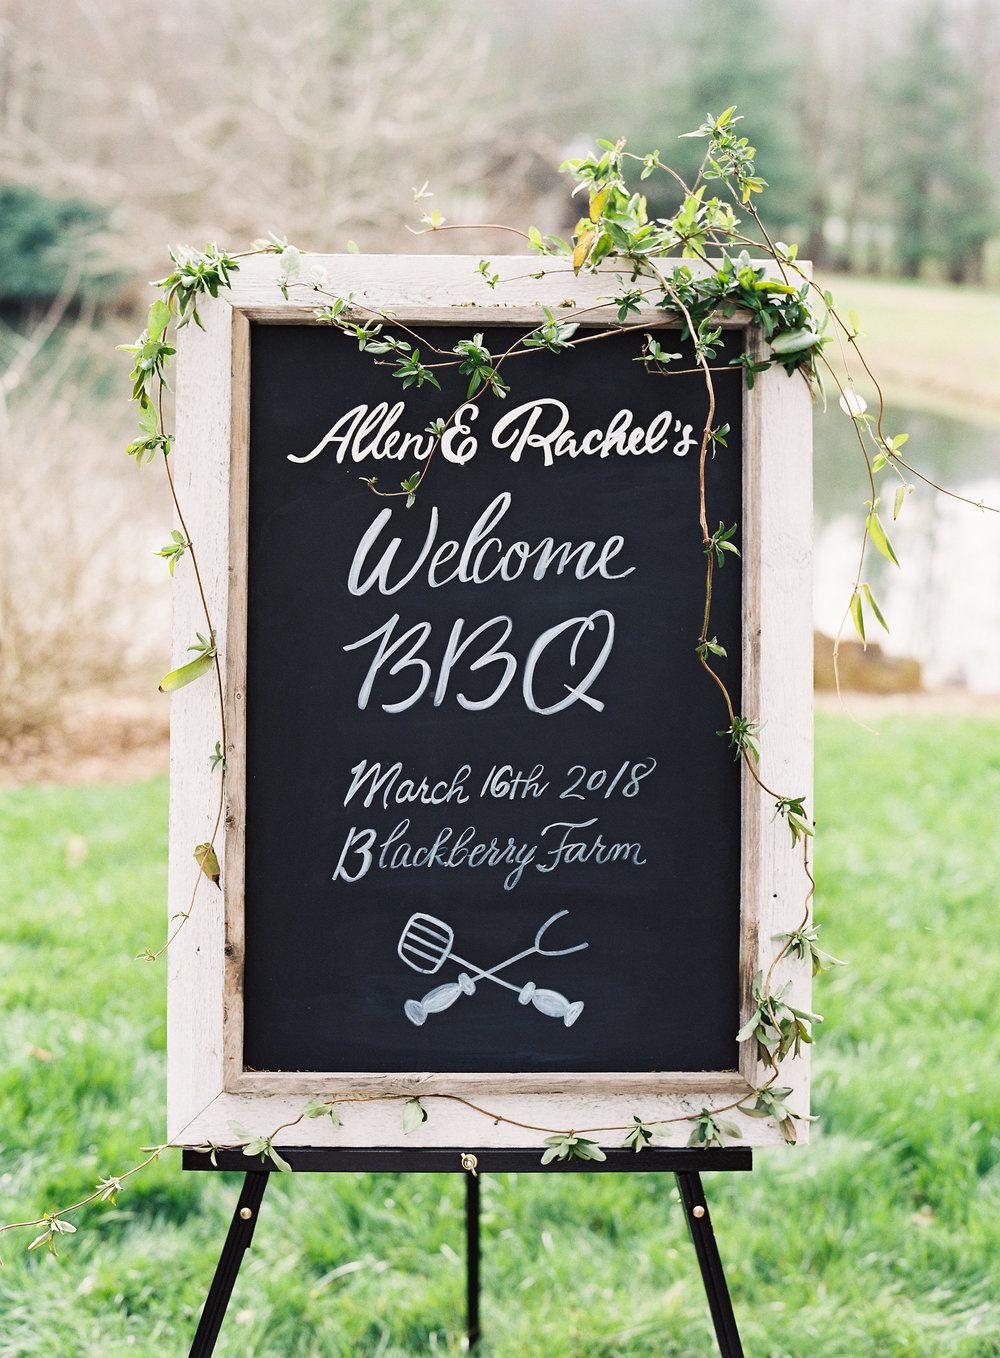 Blackberry Farm wedding welcome barbeque chalk sign with hand-lettering